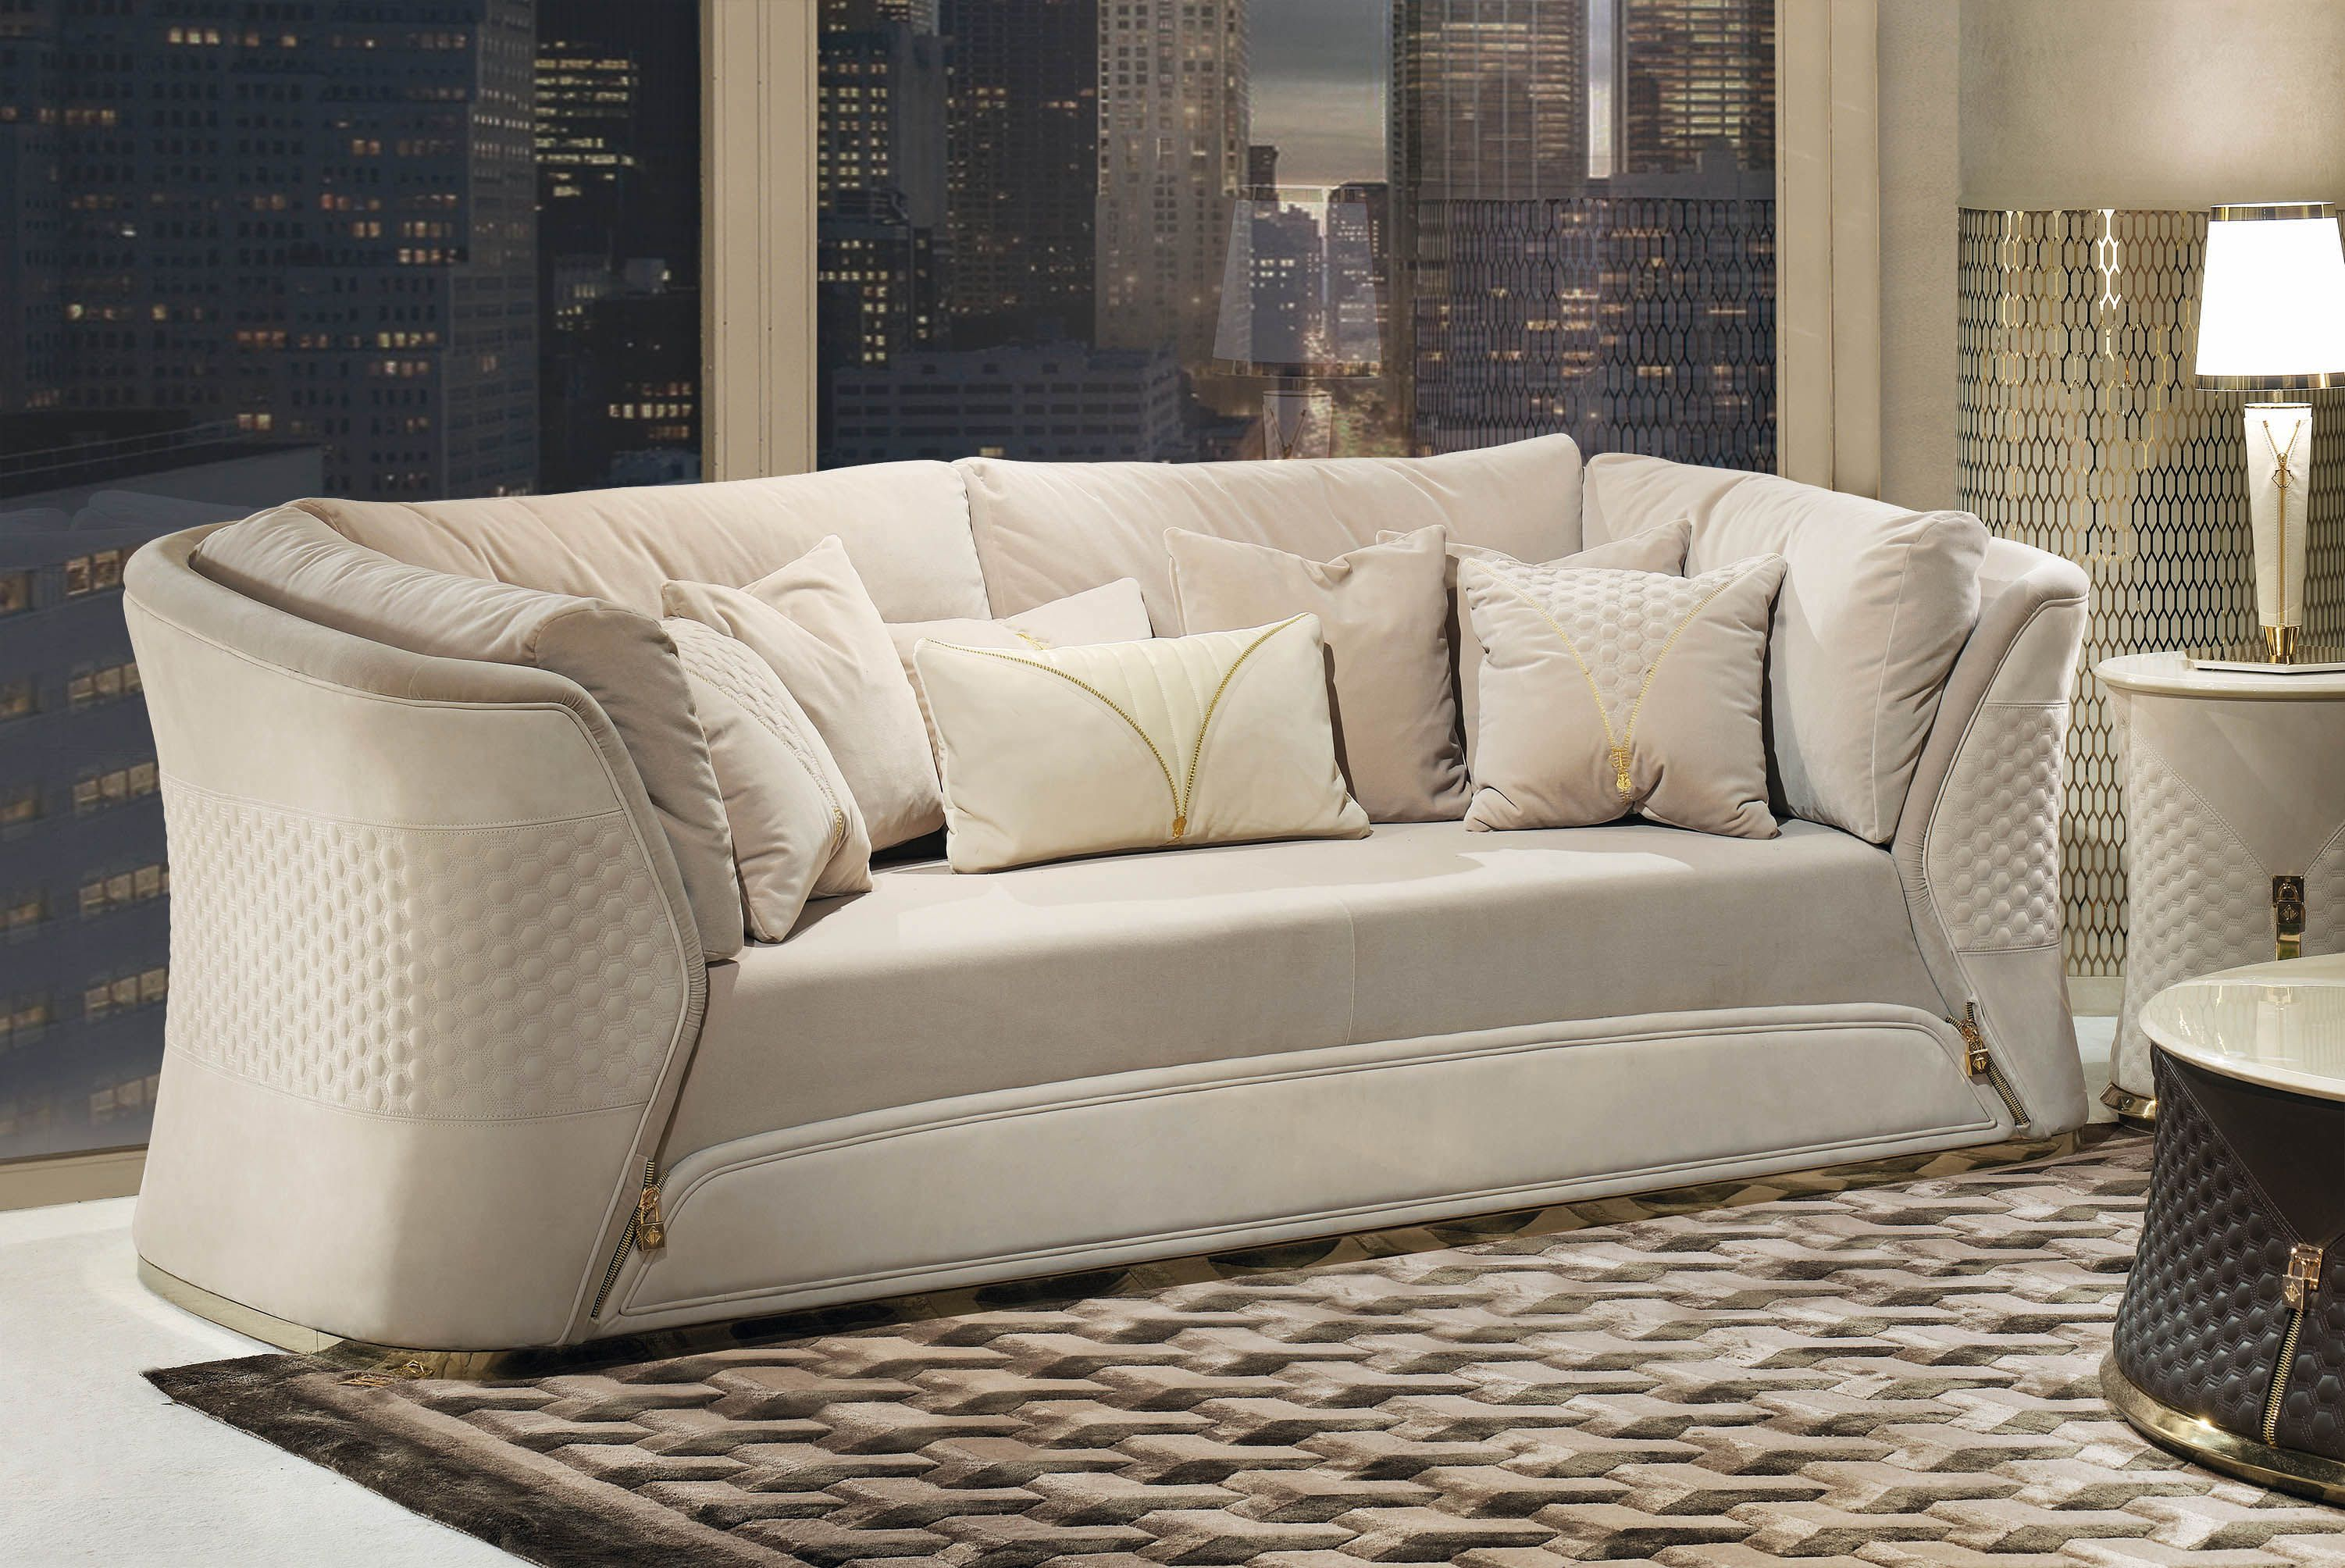 Vogue Collection Luxury italian sofa